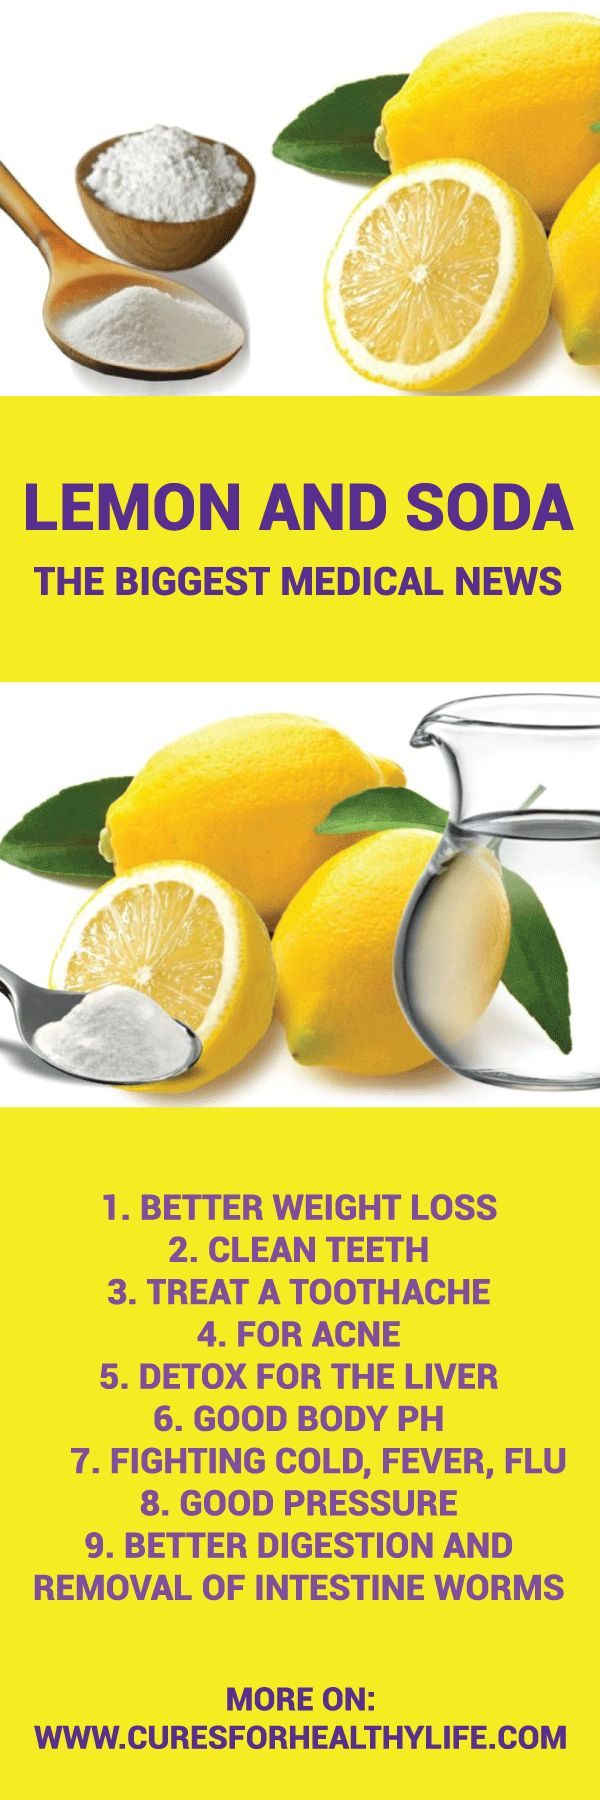 The mix of baking soda and lemon is even 10.000 times stronger than chemo. Sadly, Big Pharma keeps this as a secret since it needs profit from chemo and medicines. The lemon can kill cancer and it has such an effect on cysts and tumors. Read more on the good things about this citrus fruit:Continue Reading